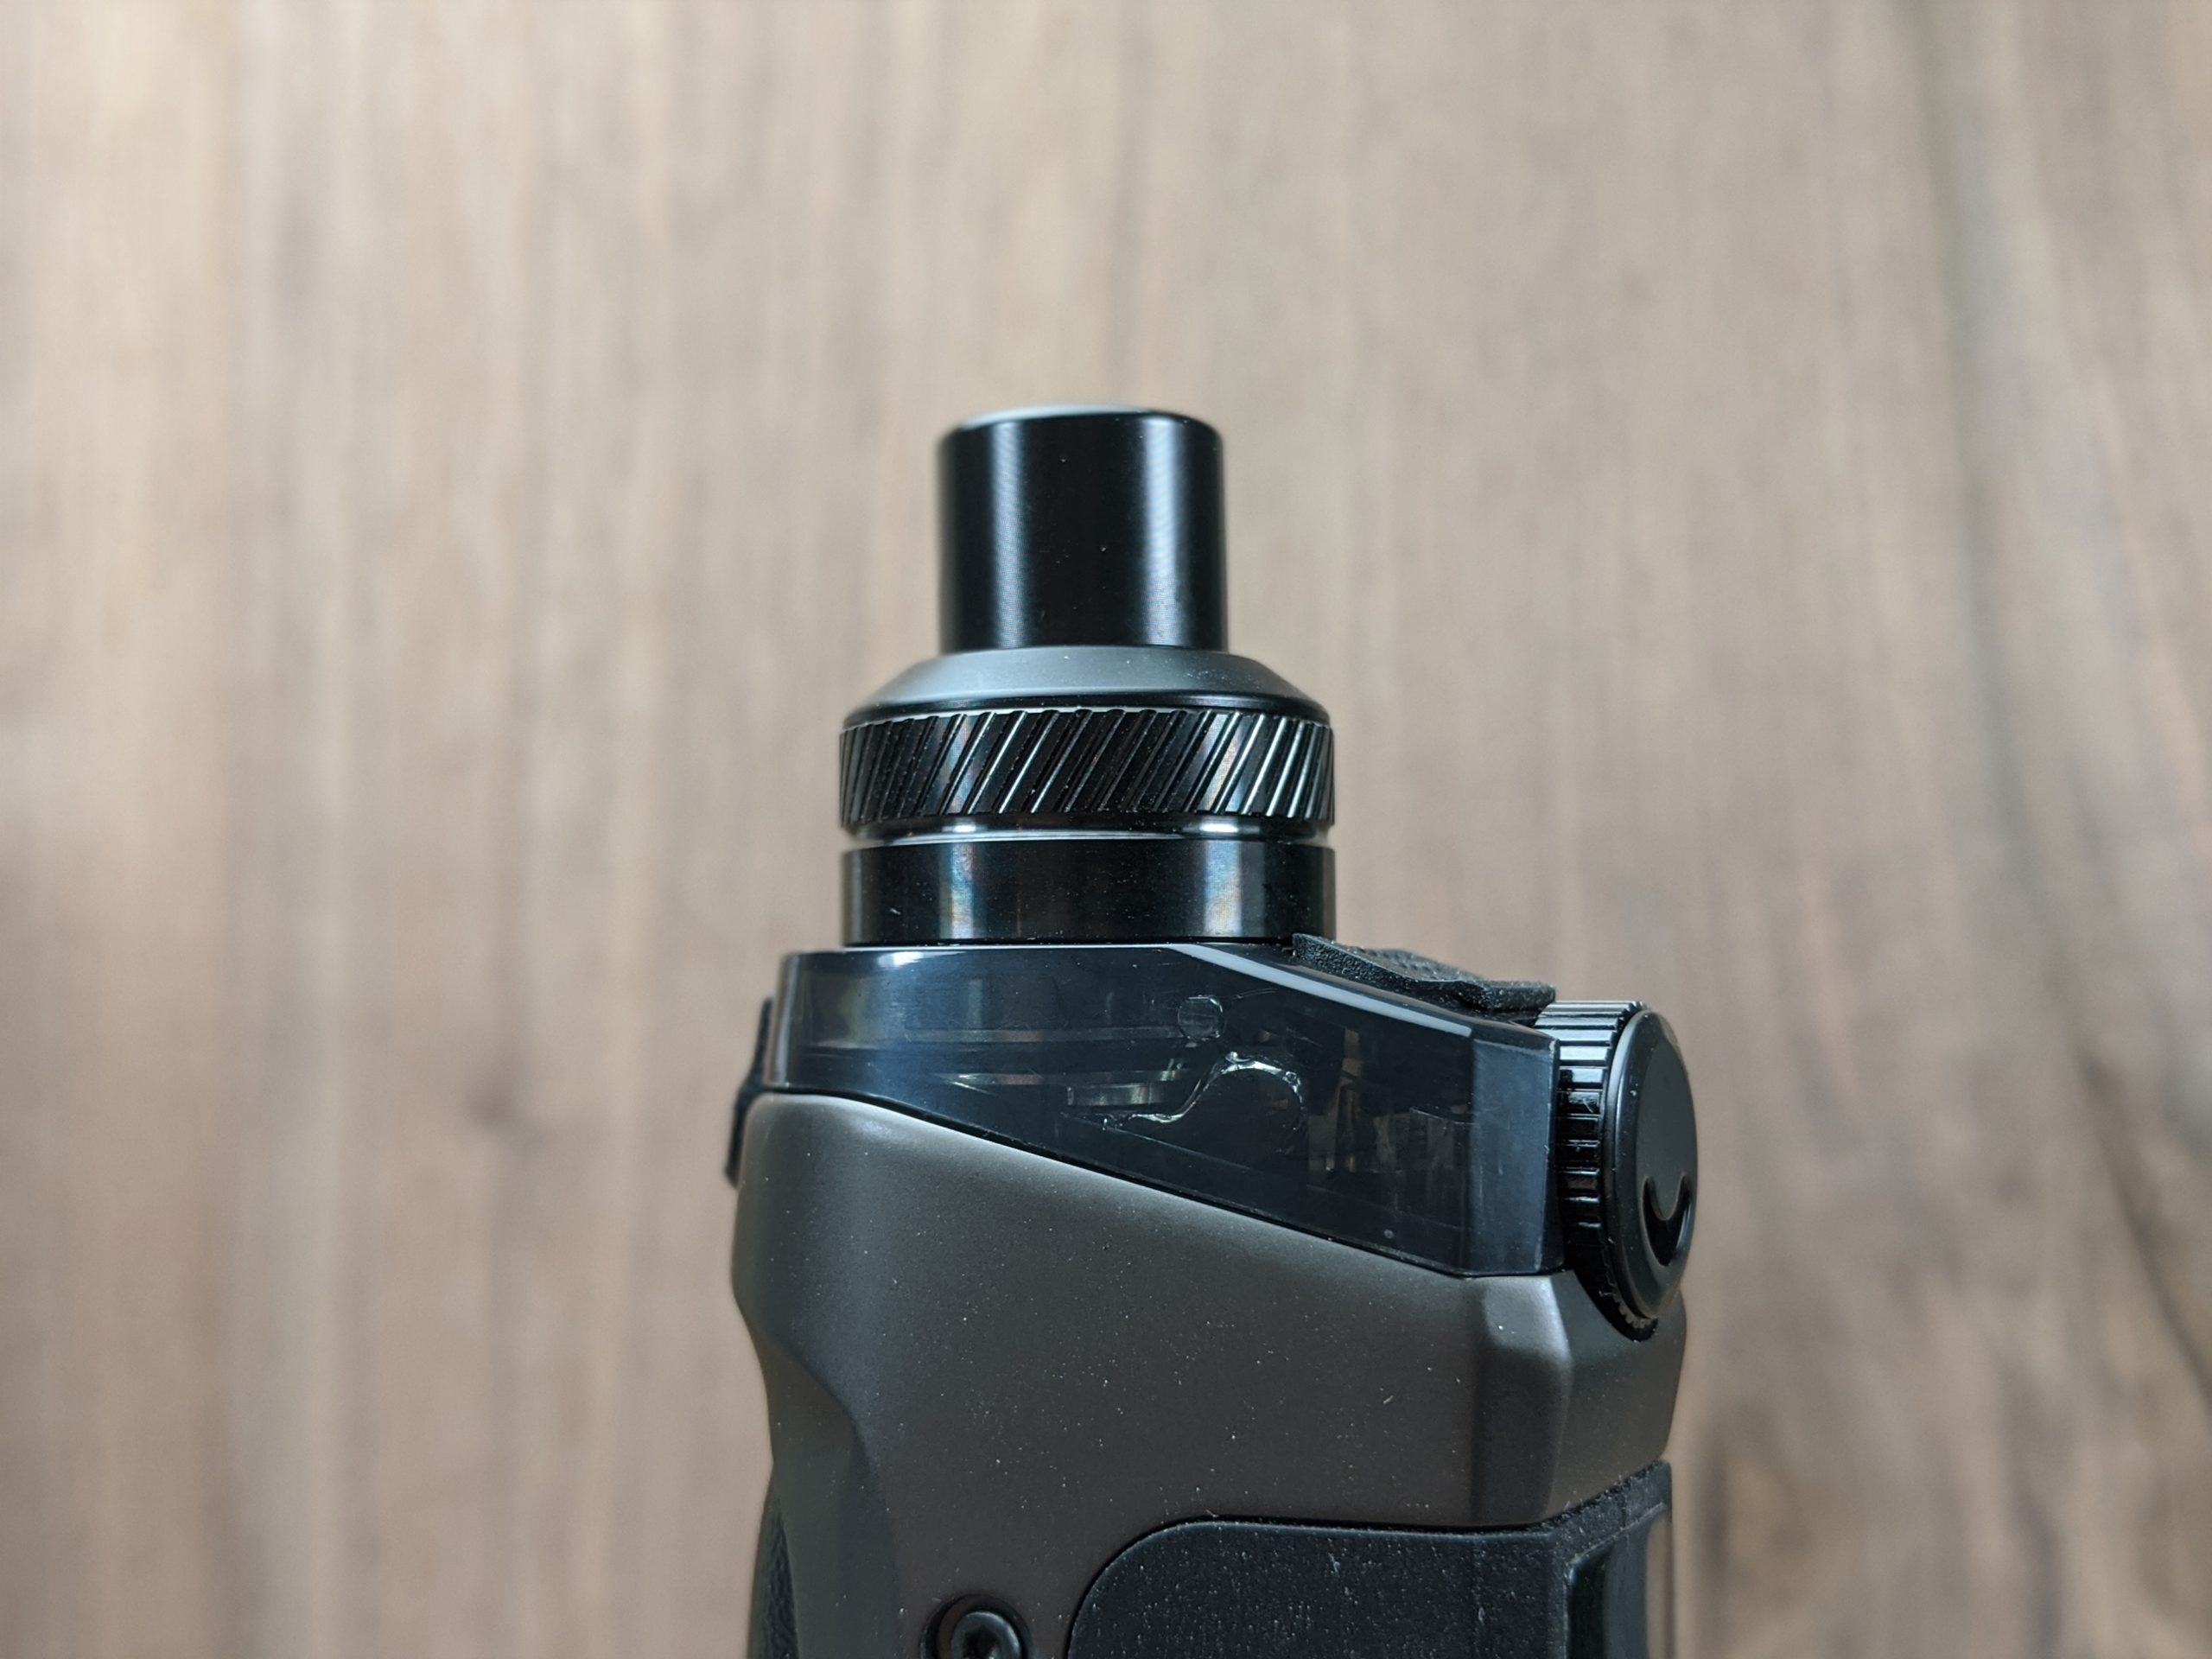 Honest Review The Aegis Boost Rba Pod The Vape Review